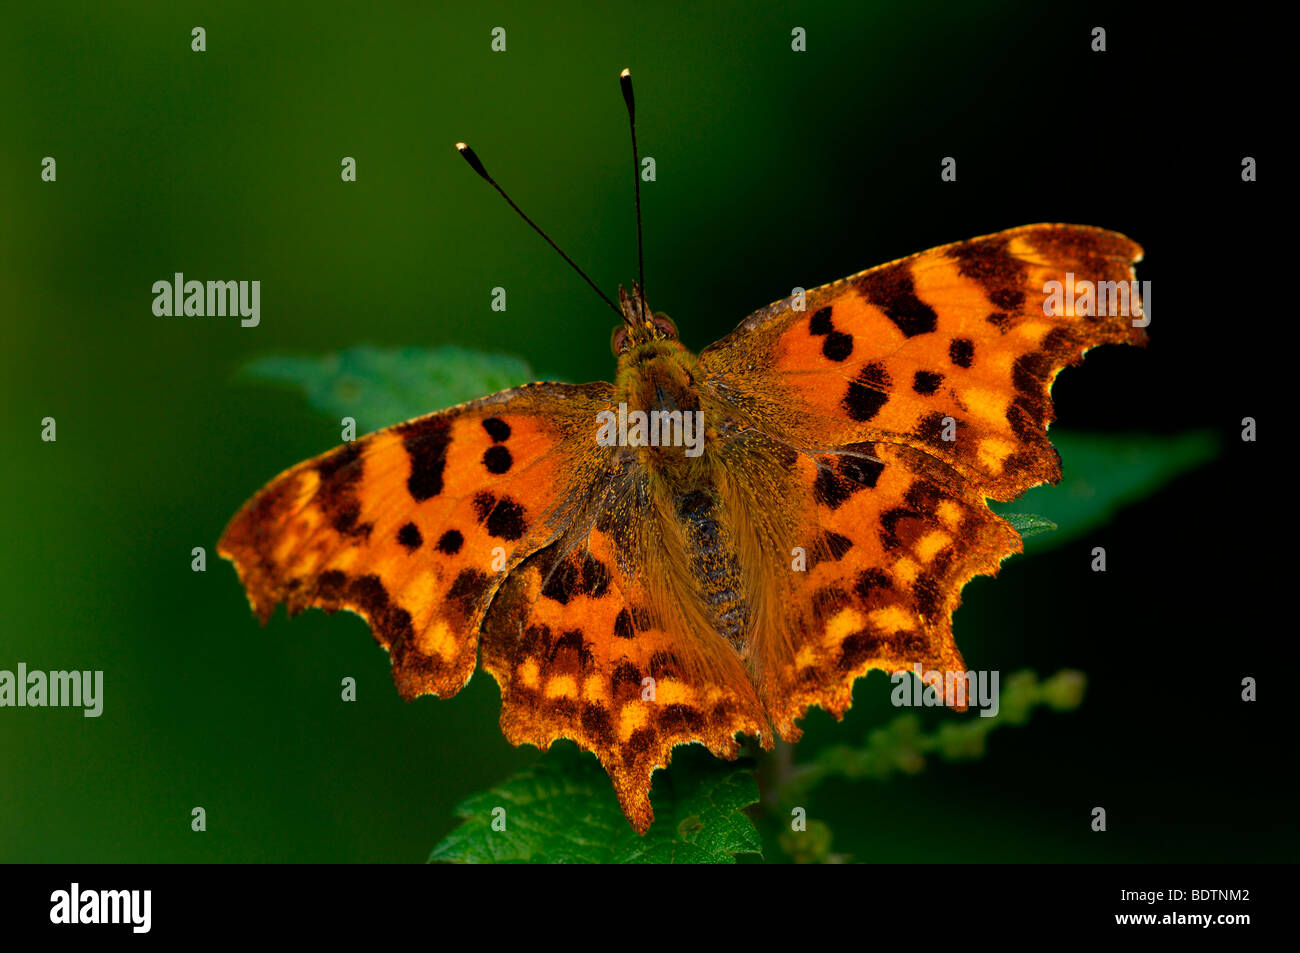 C-Falter, Polygonia c-album, comma butterfly - Stock Image